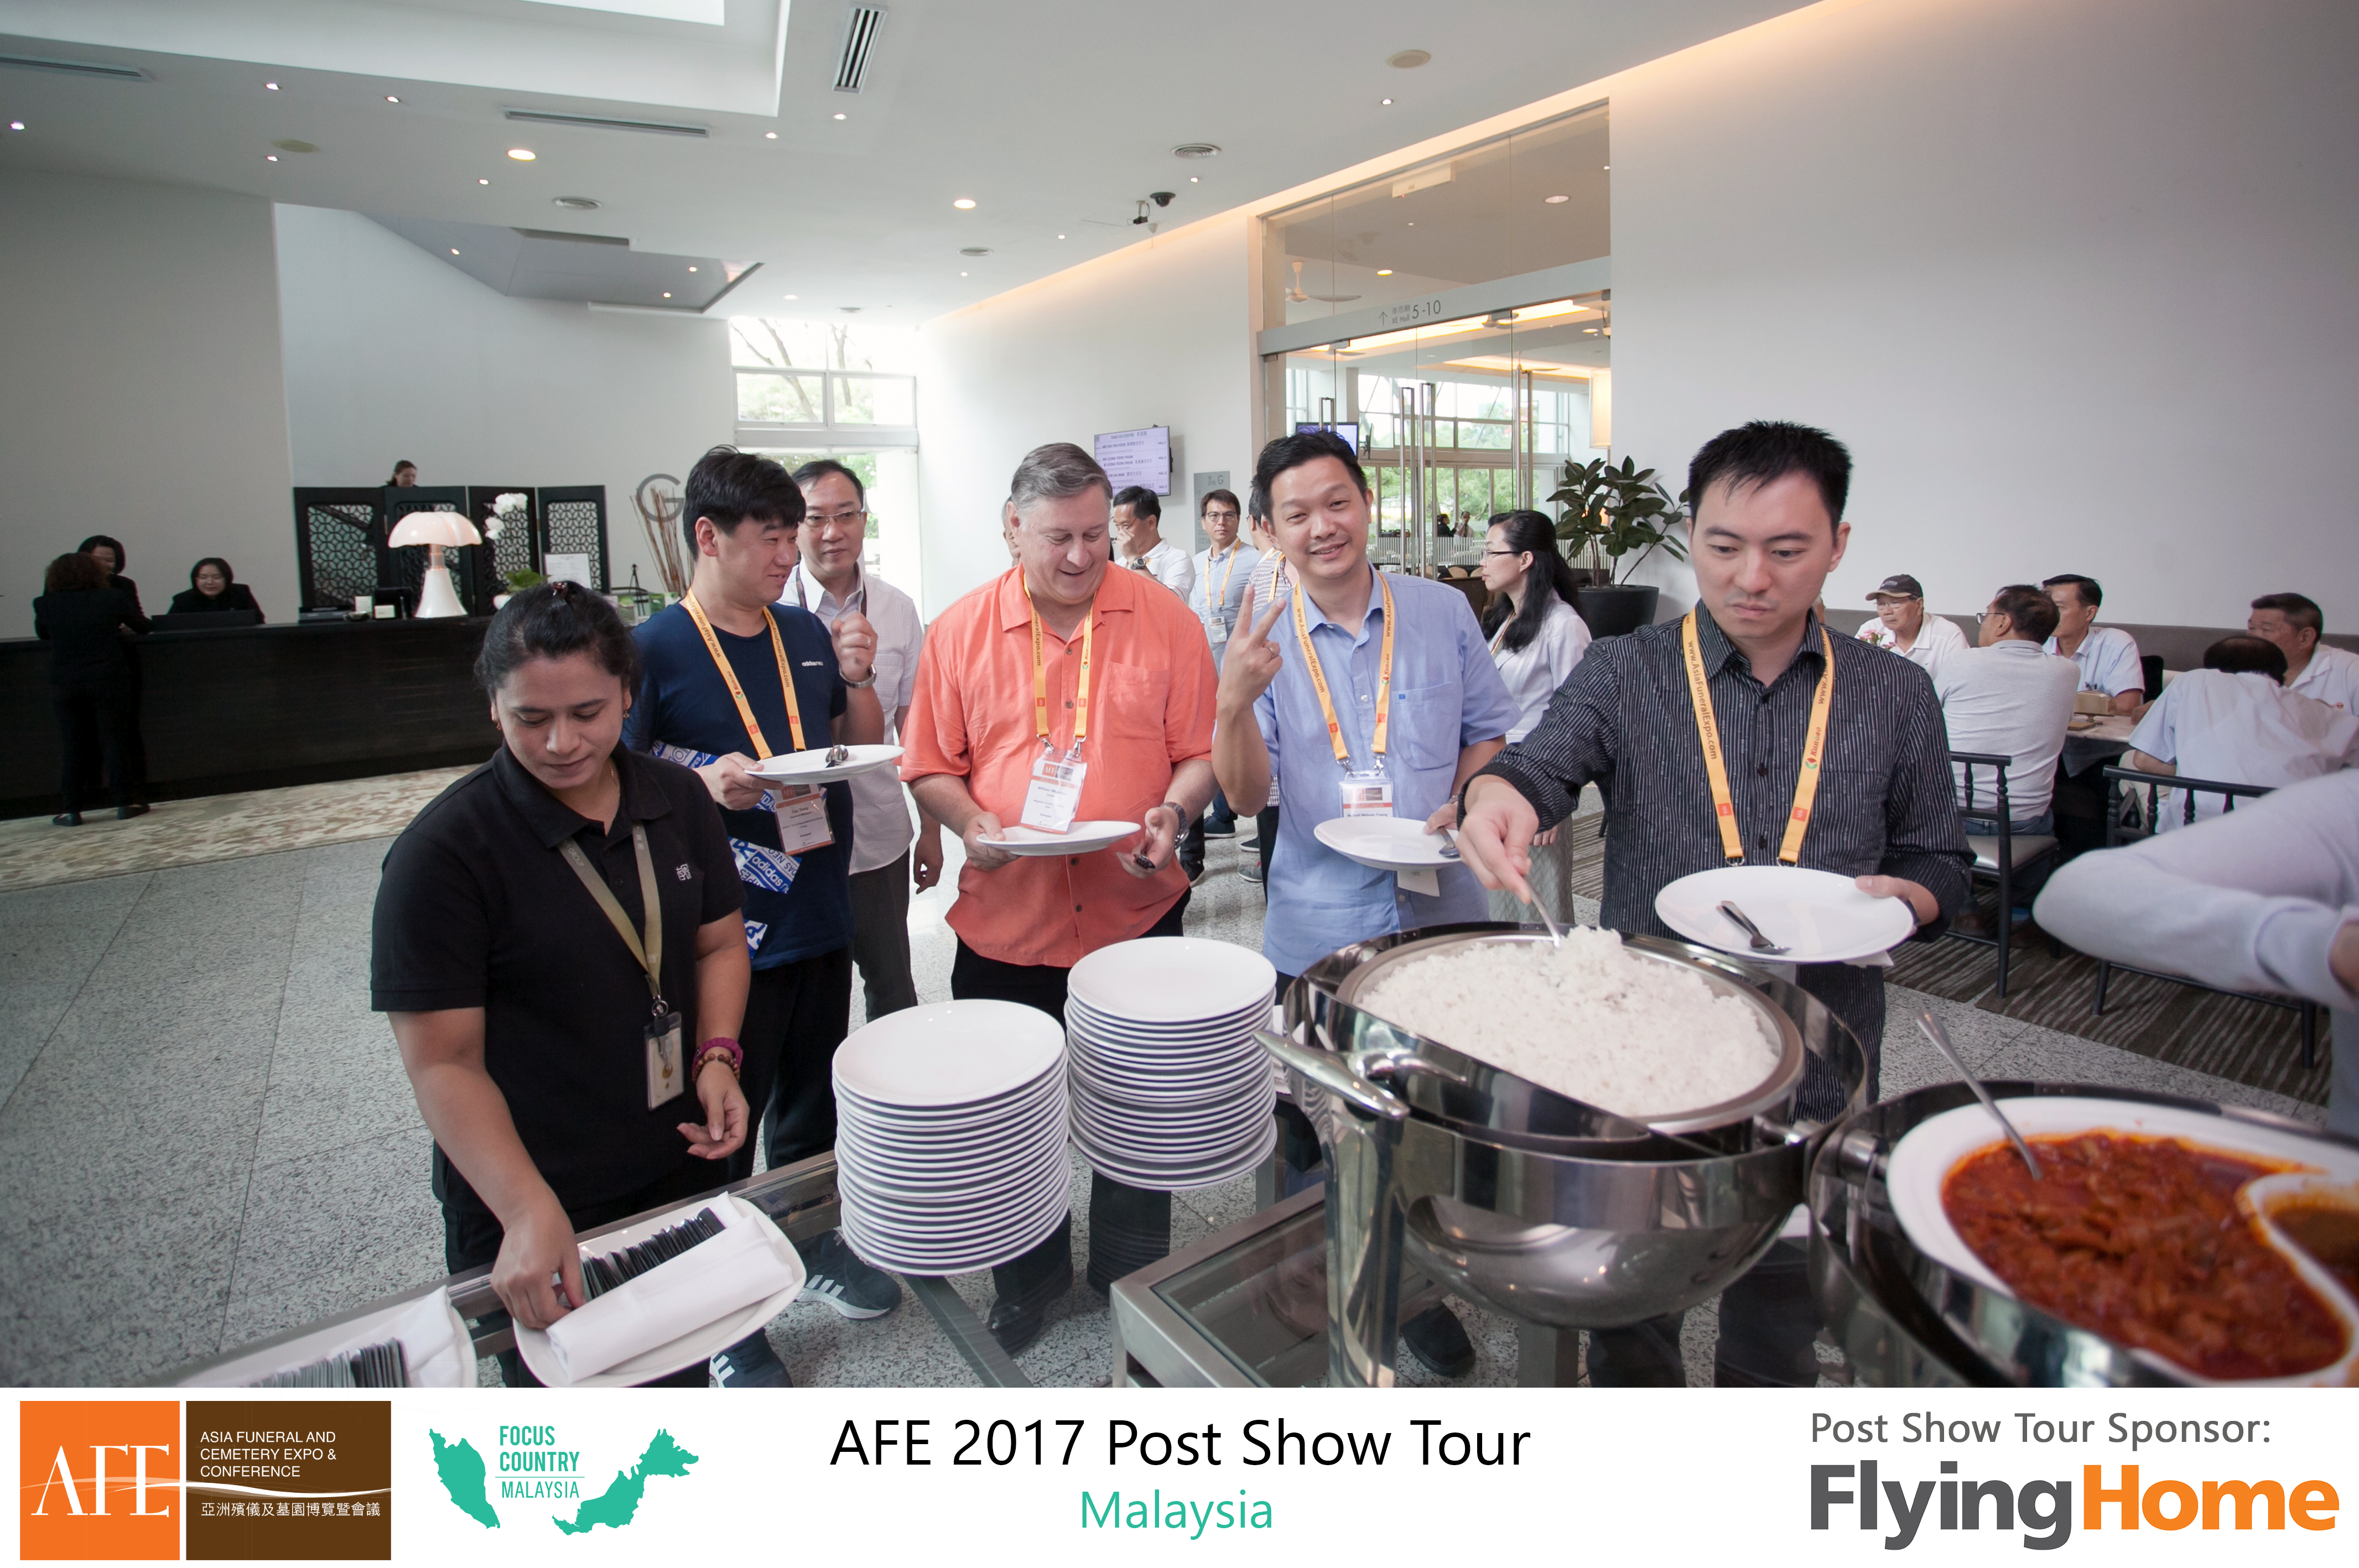 AFE Post Show Tour 2017 Day 3 -23